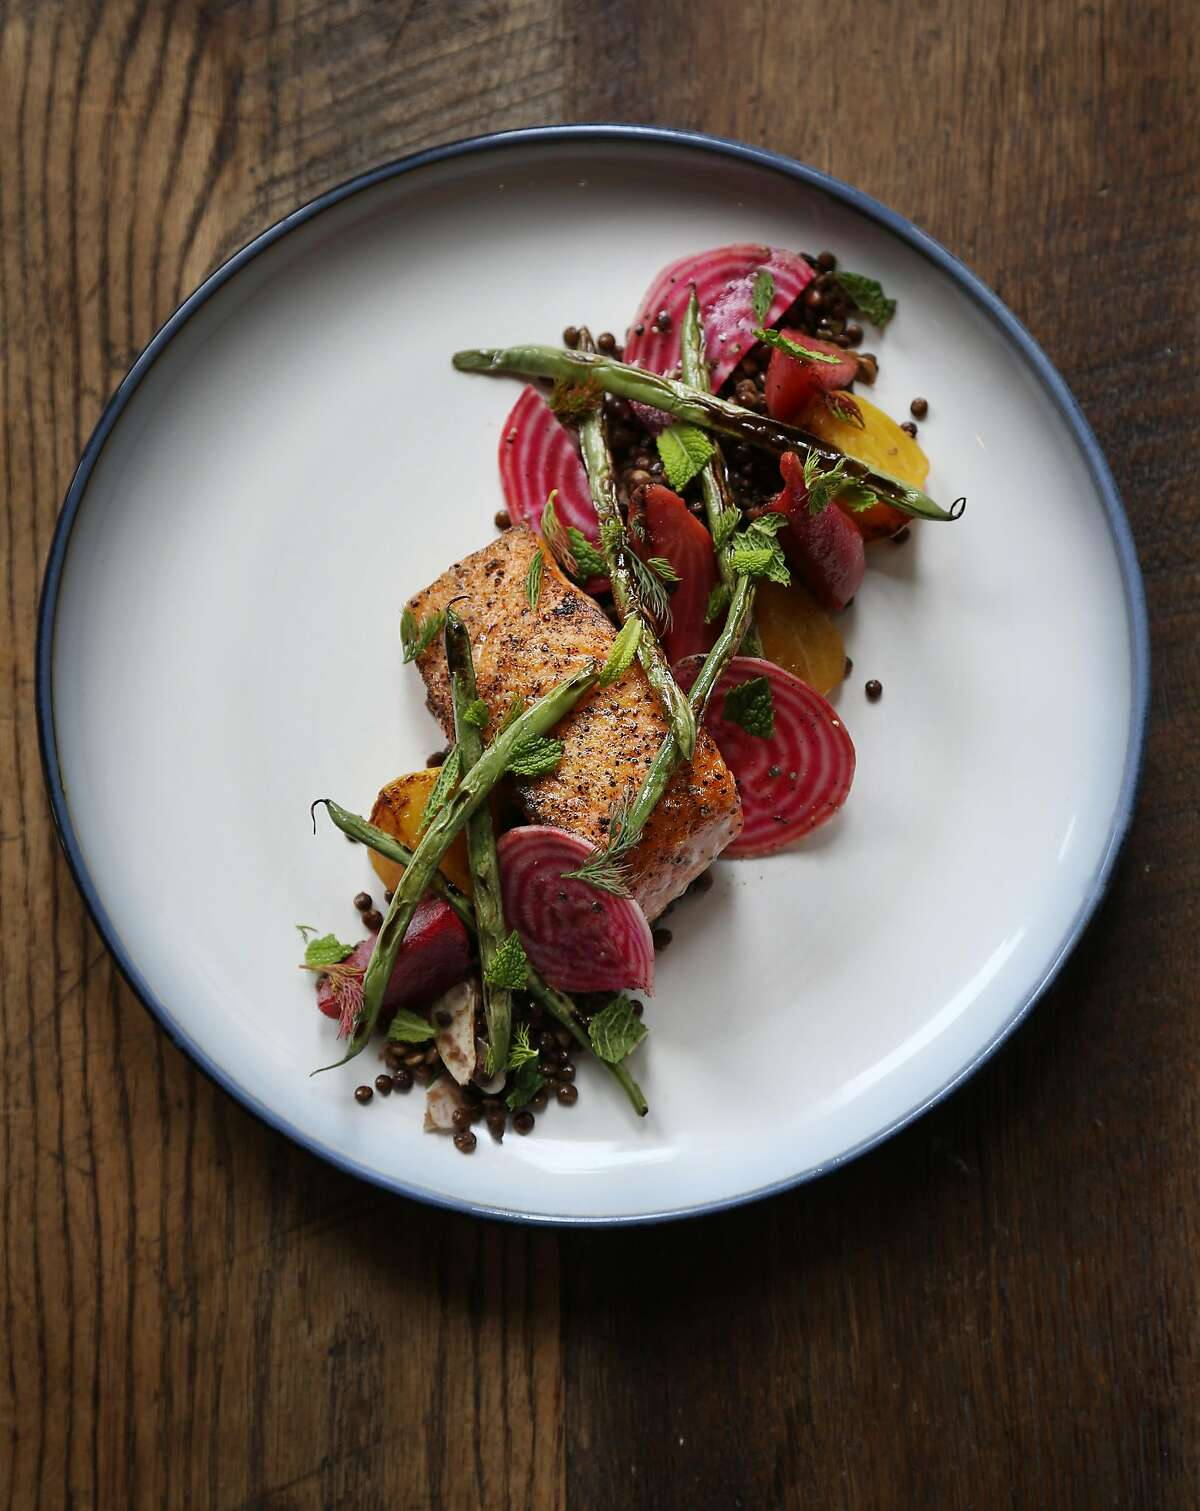 Line Caught King Salmon with roasted beets, black lentils and blistered pole beans is one of the entrees offered at Salt Wood Kitchen & Oysterette on Monday, May 21st, 2018, in Marina, California.